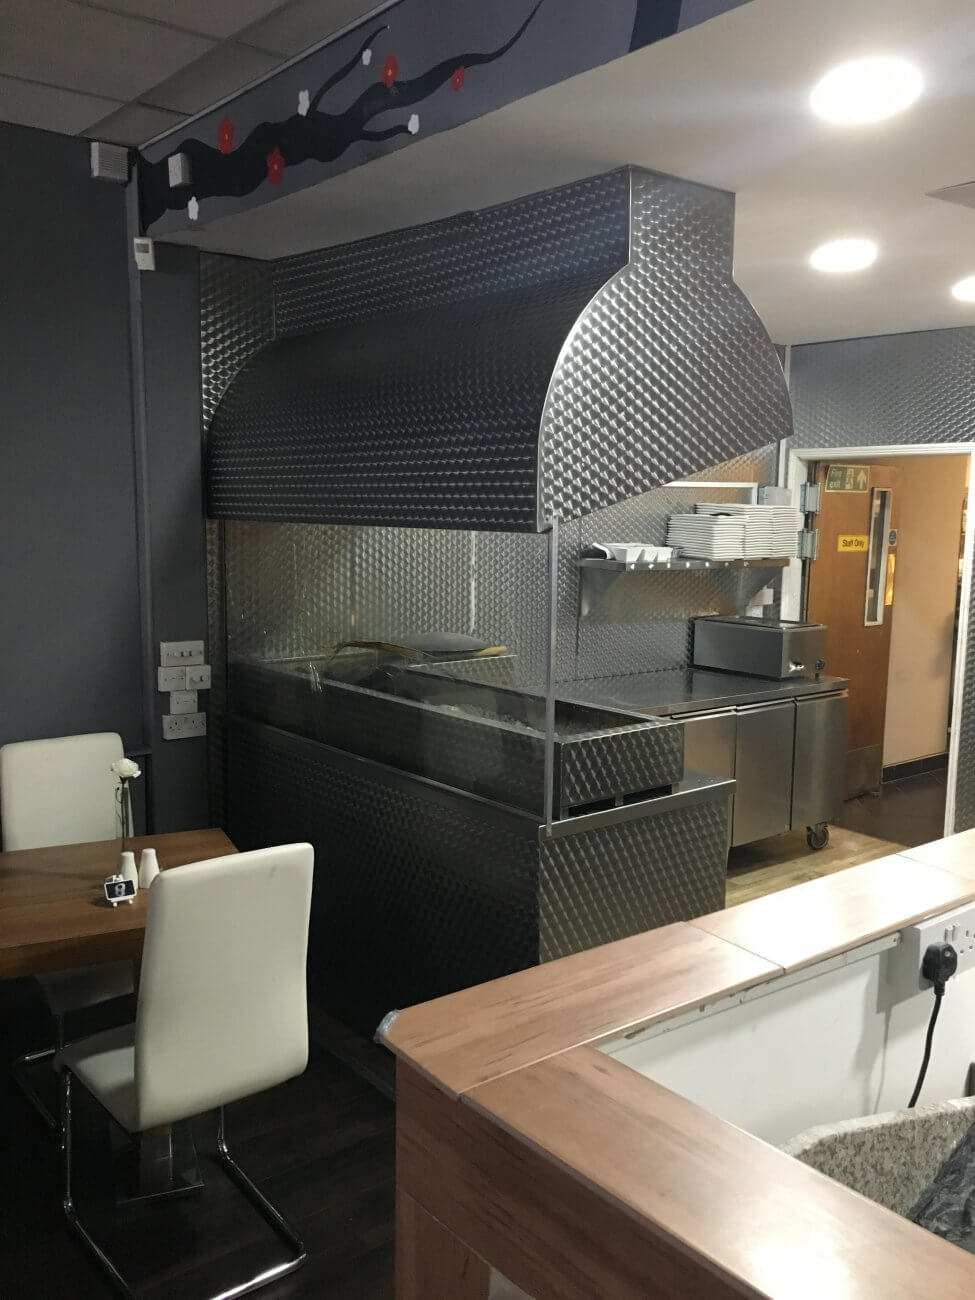 Stainless steel kitchen canopy for restaurant